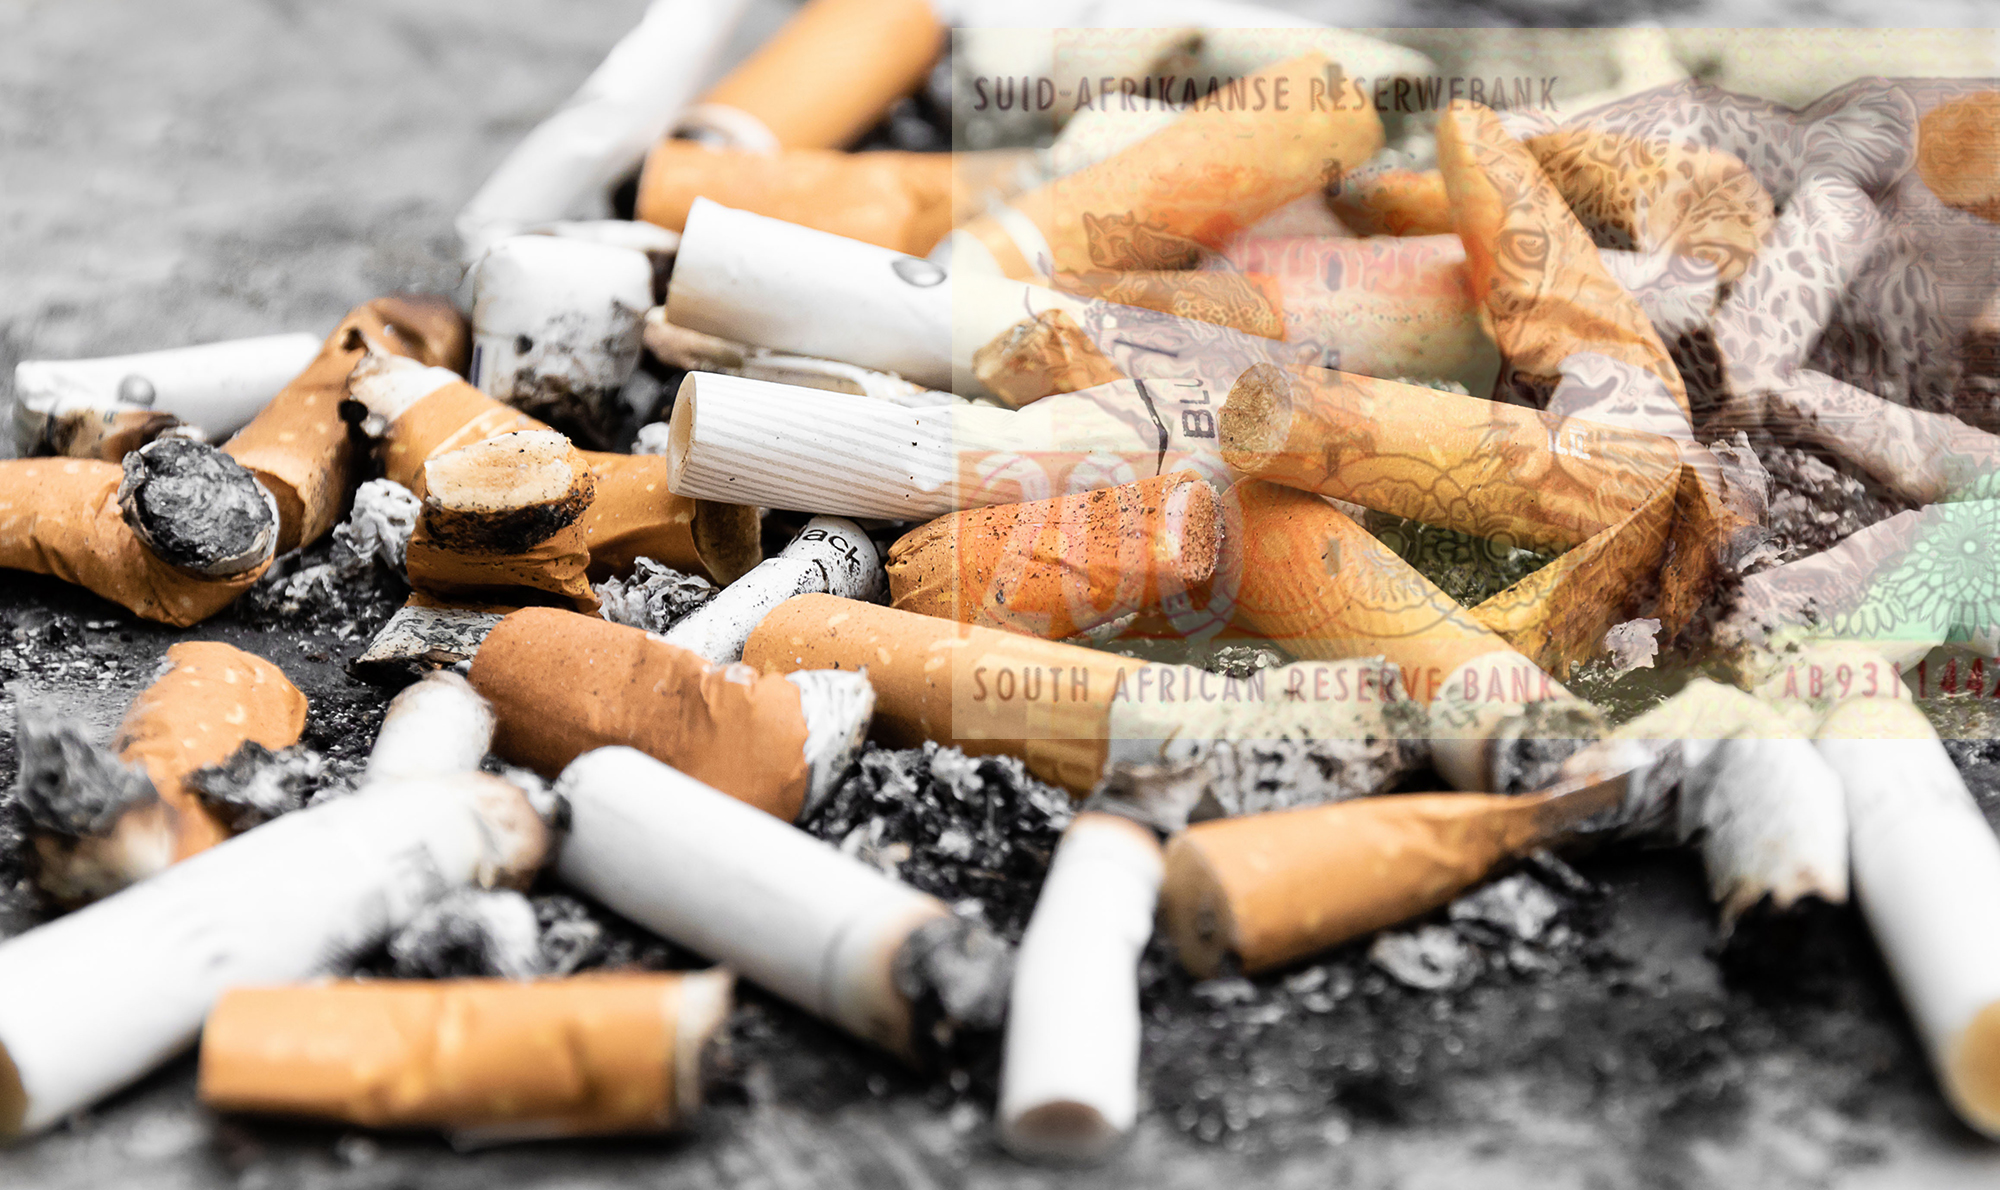 Brazen assassination attempt as SA tobacco war gets deadlier